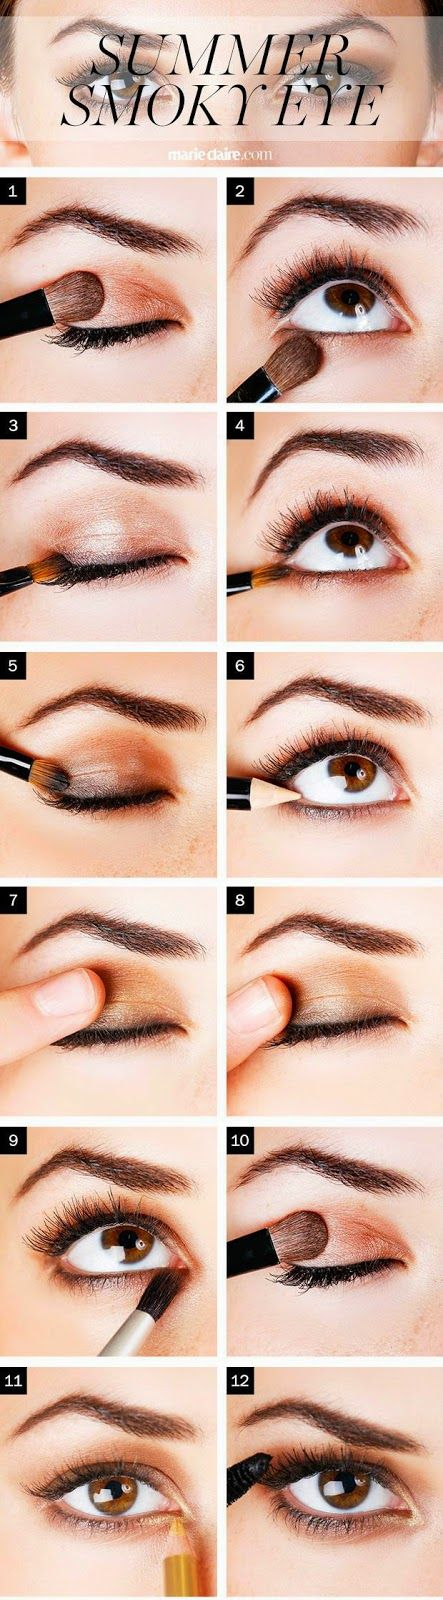 How To Get a Bronze Summer Smoky Eye - Step By Step Metallic Smoky Eye - Beauty Bets